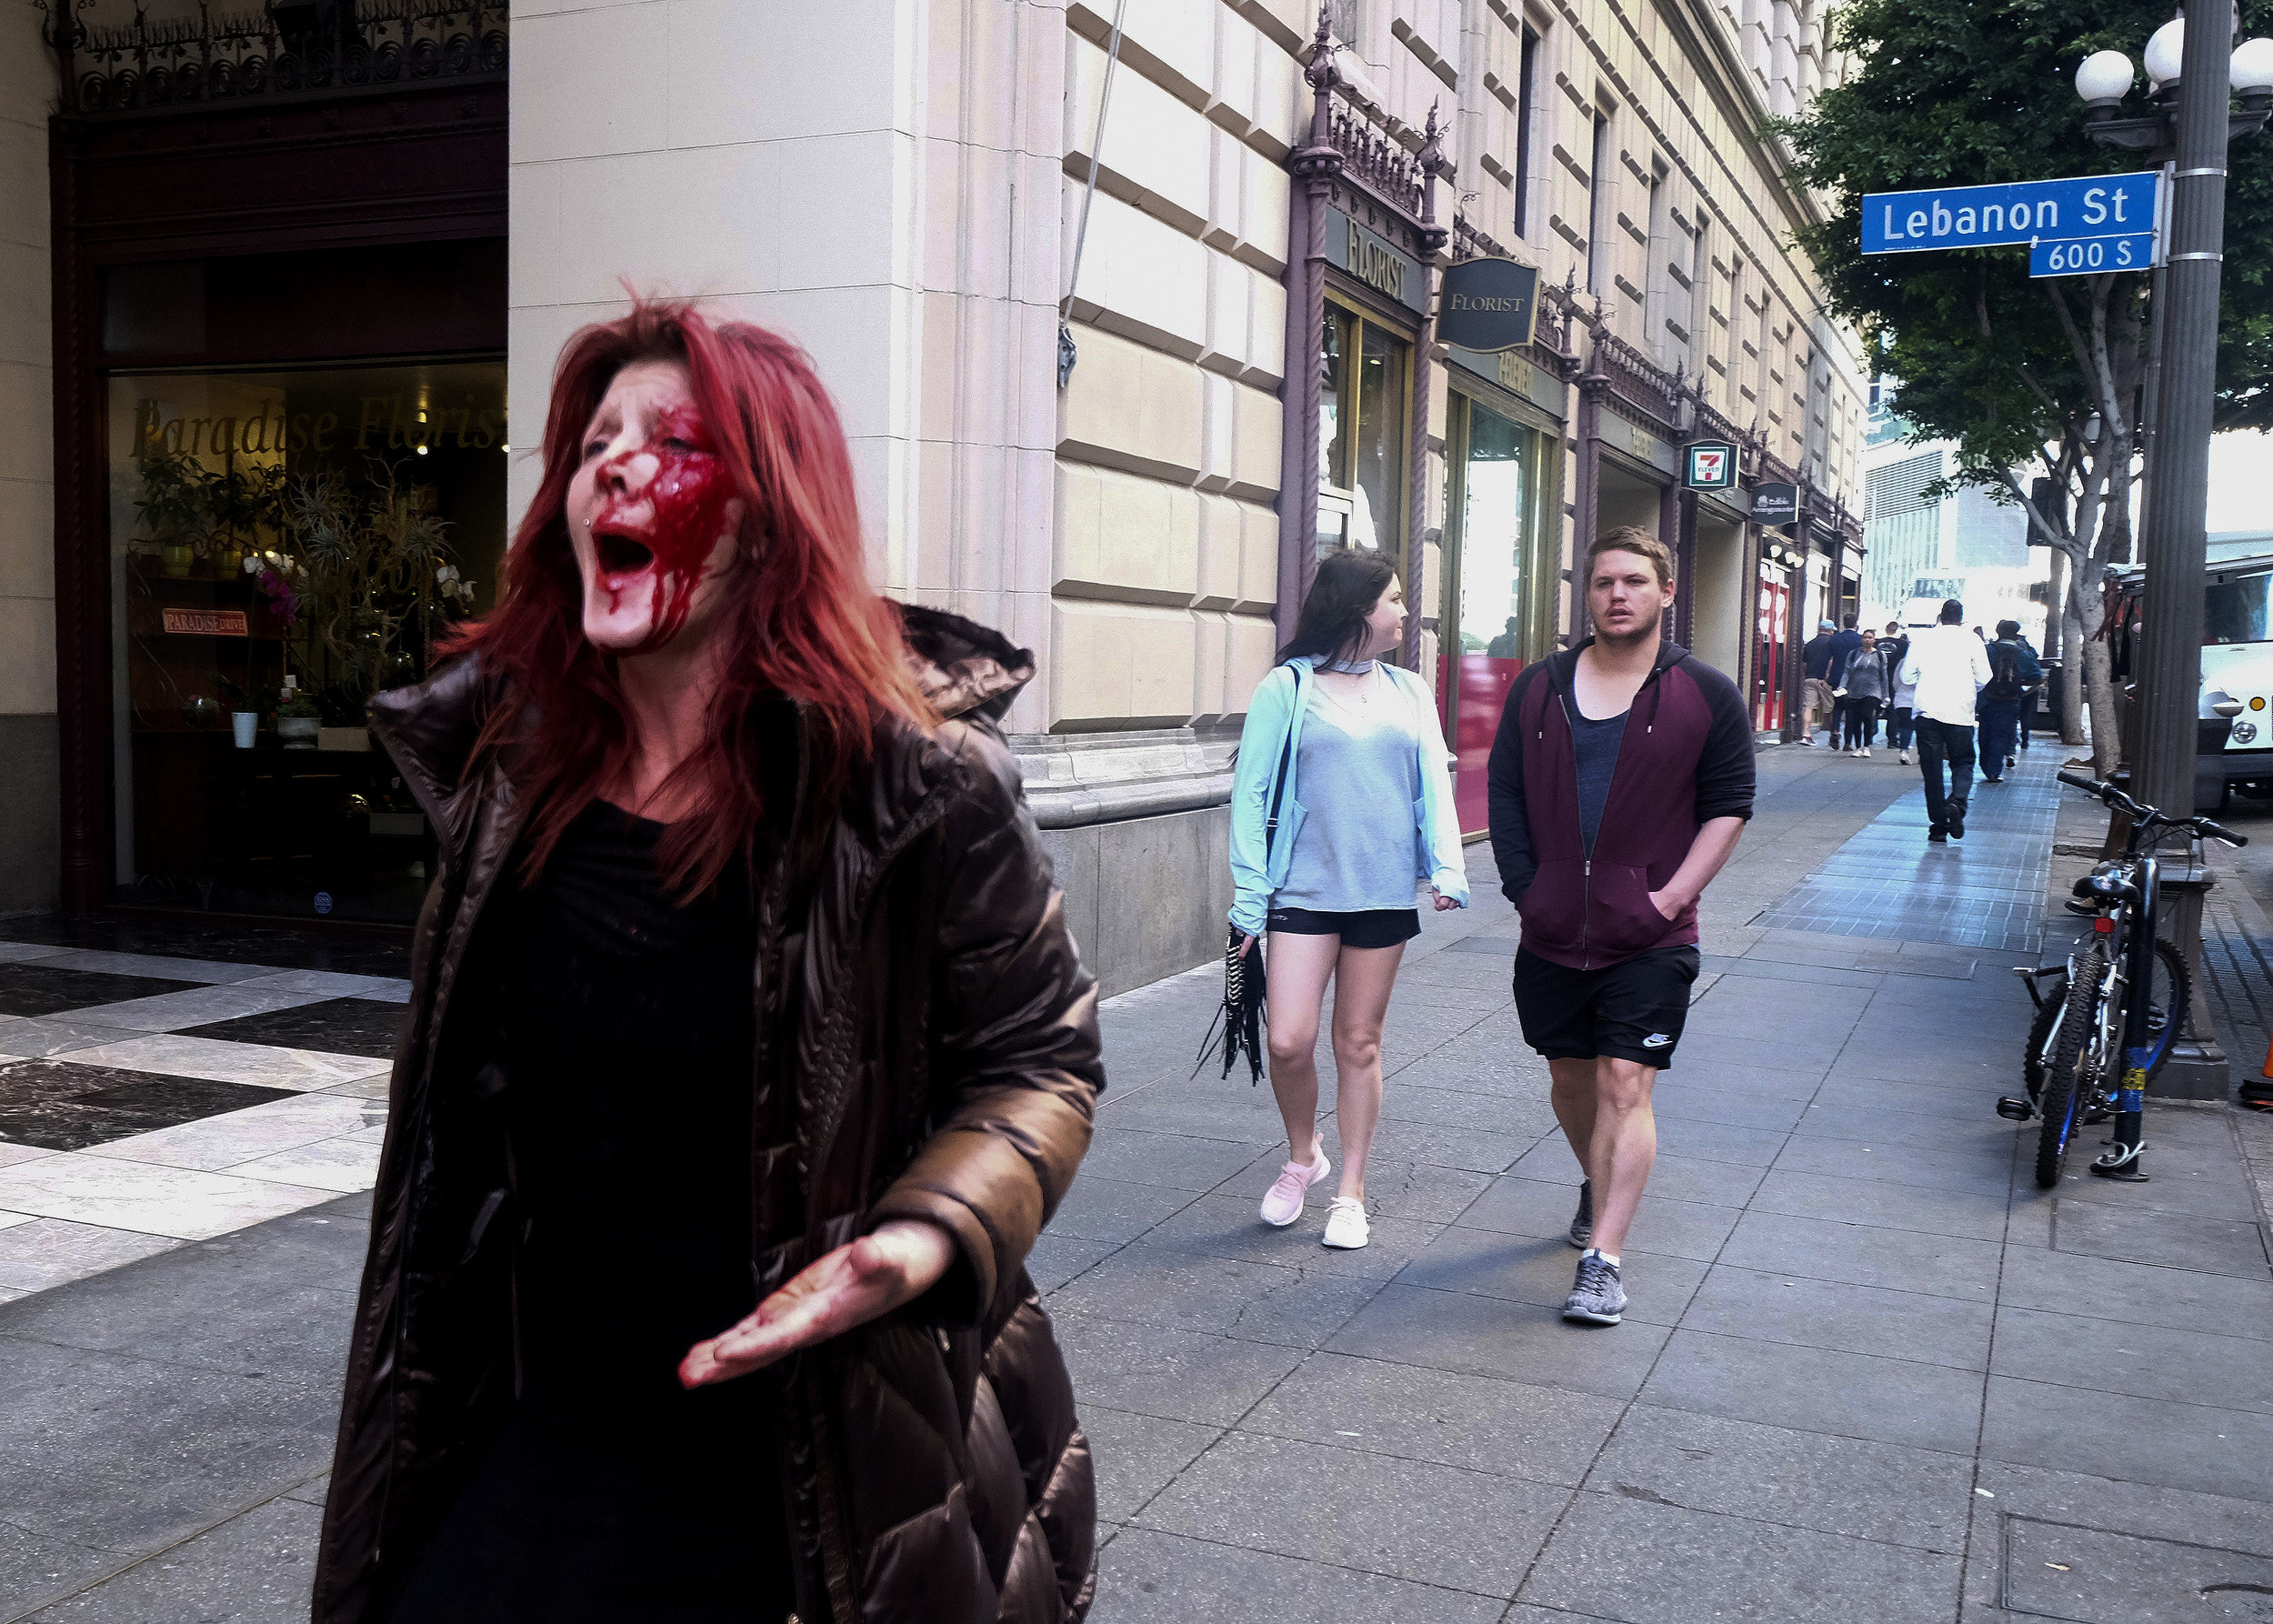 A woman with her face covered in blood after being assaulted by a man (white top in the back) in downtown Los Angeles, Wednesday, Jan 24, 2018. The suspect was taken into custody and it is believed he and the victim knew each other so this was not a random attack, police say.